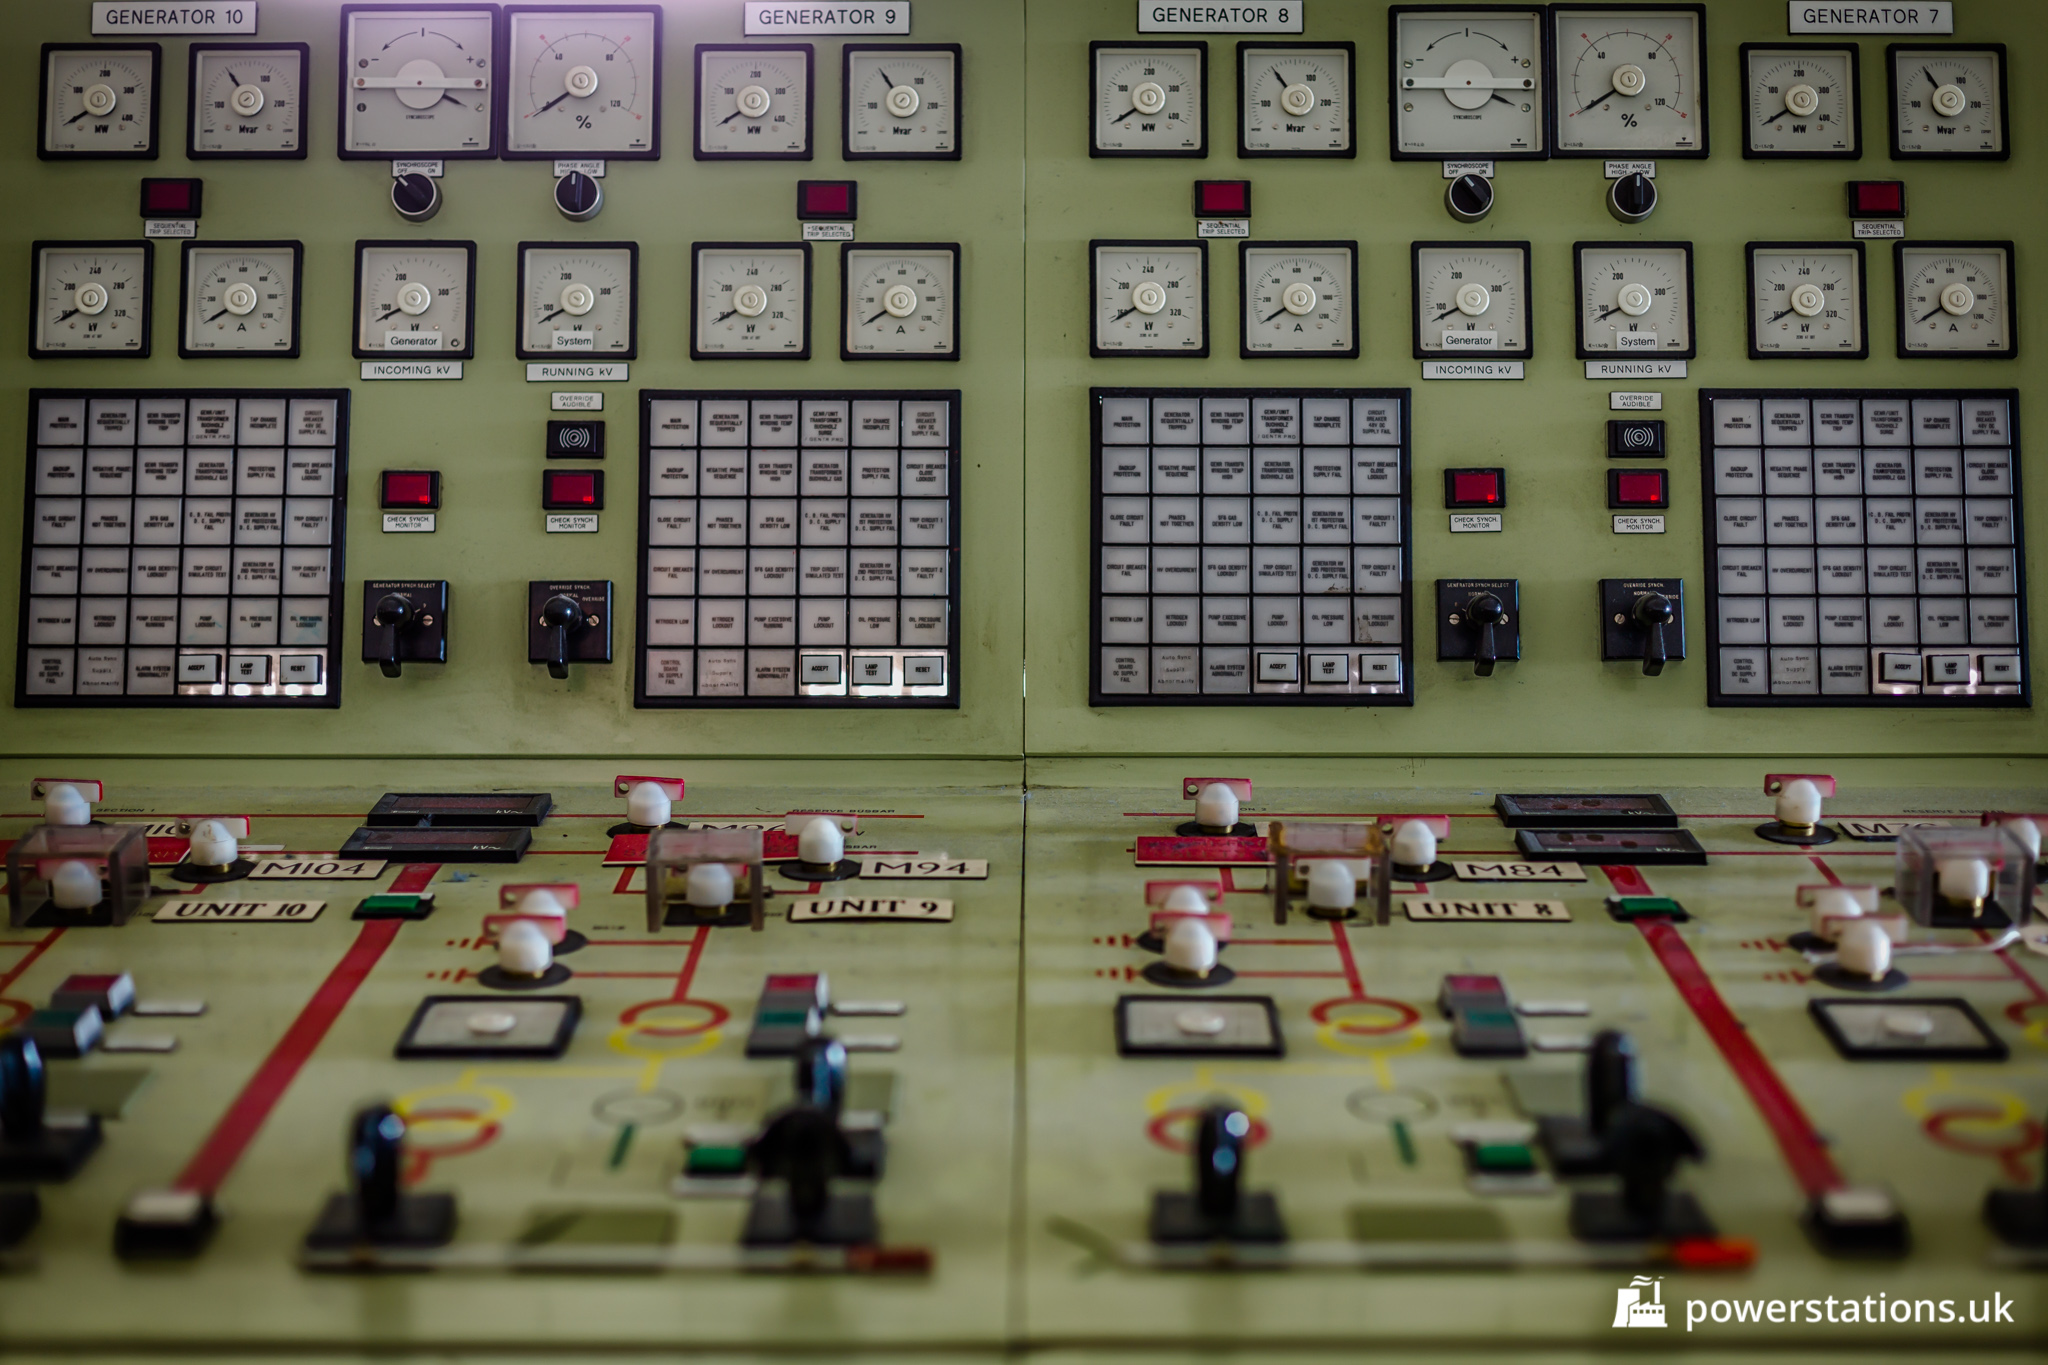 Tilbury B Power Station Control Room Power Stations Of